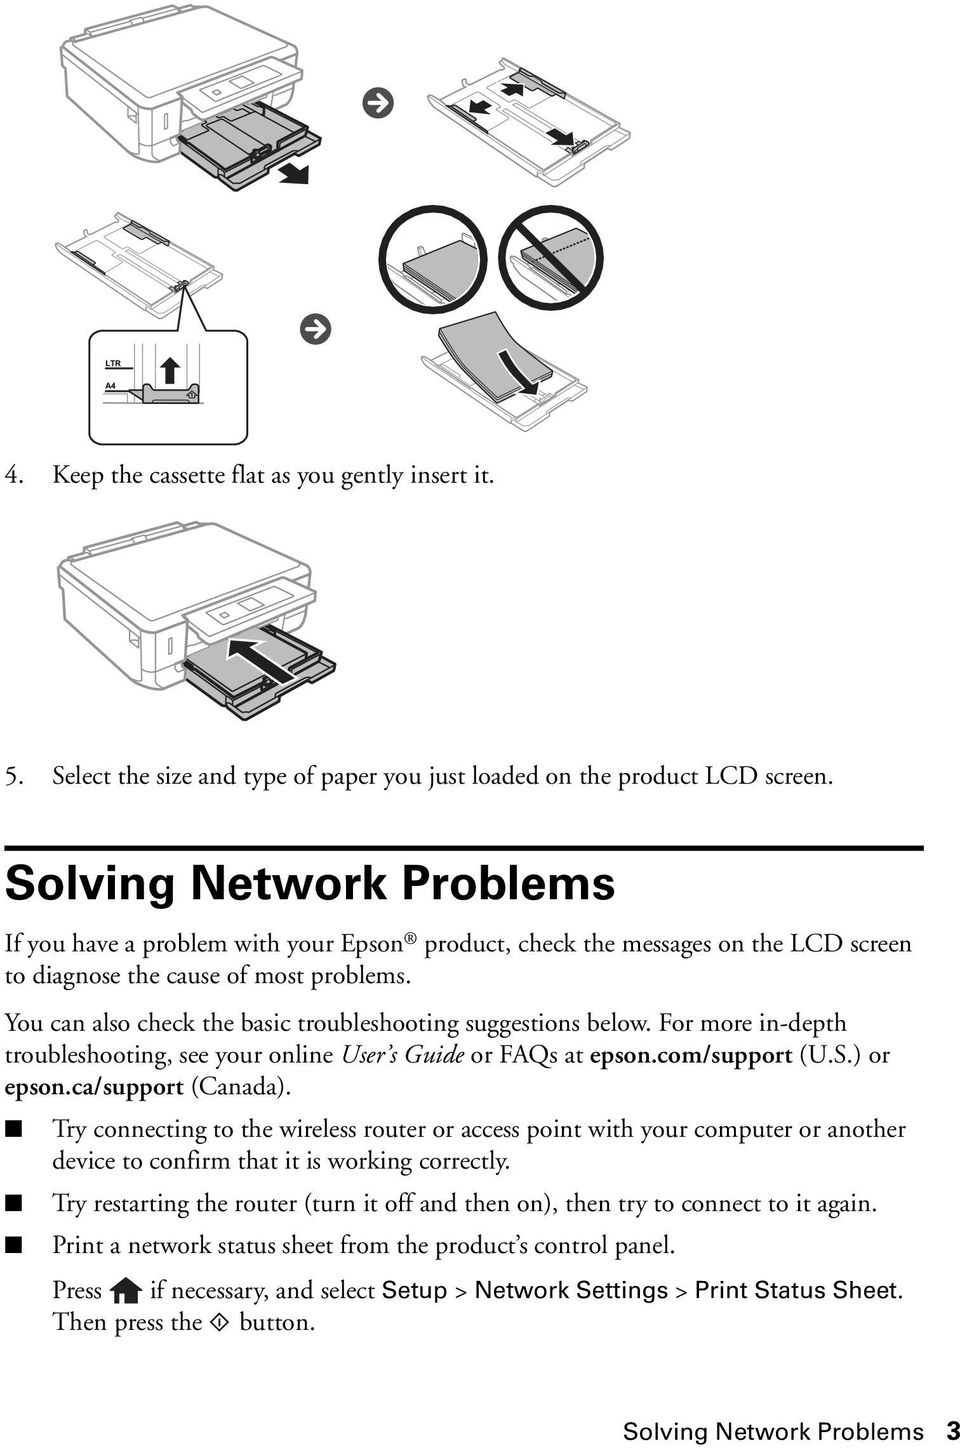 You can also check the basic troubleshooting suggestions below. For more in-depth troubleshooting, see your online User s Guide or FAQs at epson.com/support (U.S.) or epson.ca/support (Canada).